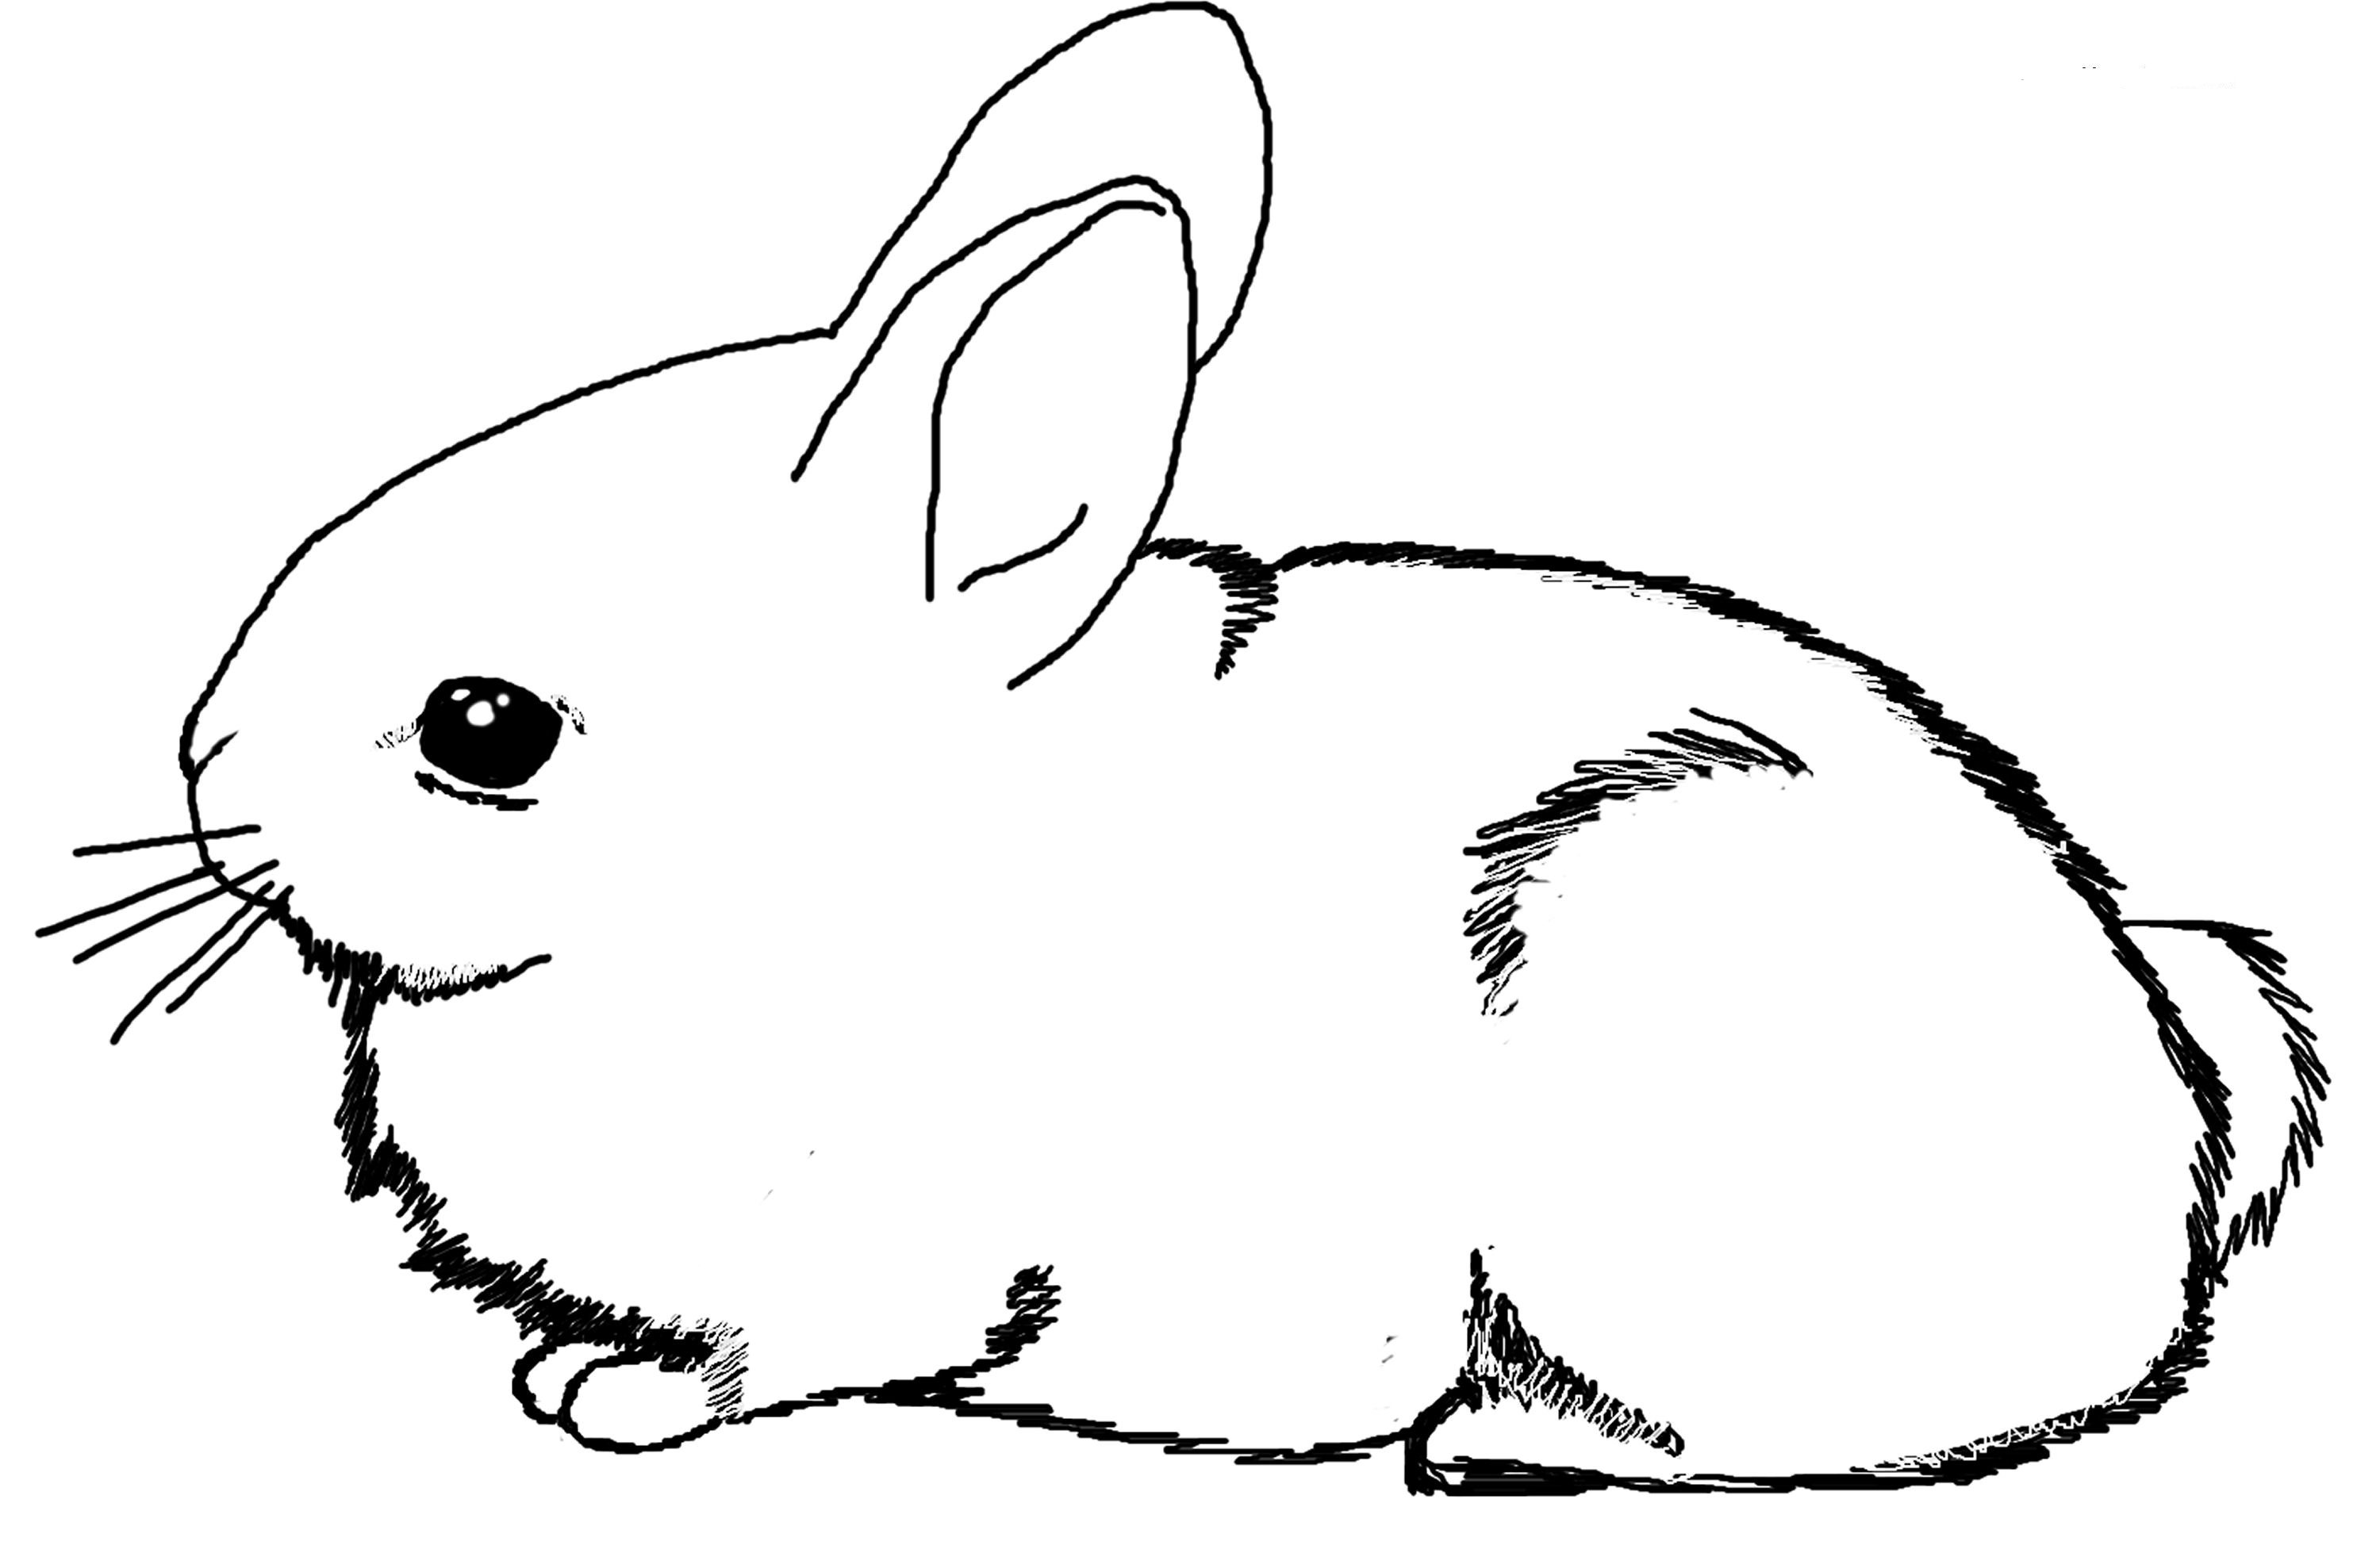 bunnies bunny coloring pages | Bunny Coloring Pages | Free download best Bunny Coloring ...